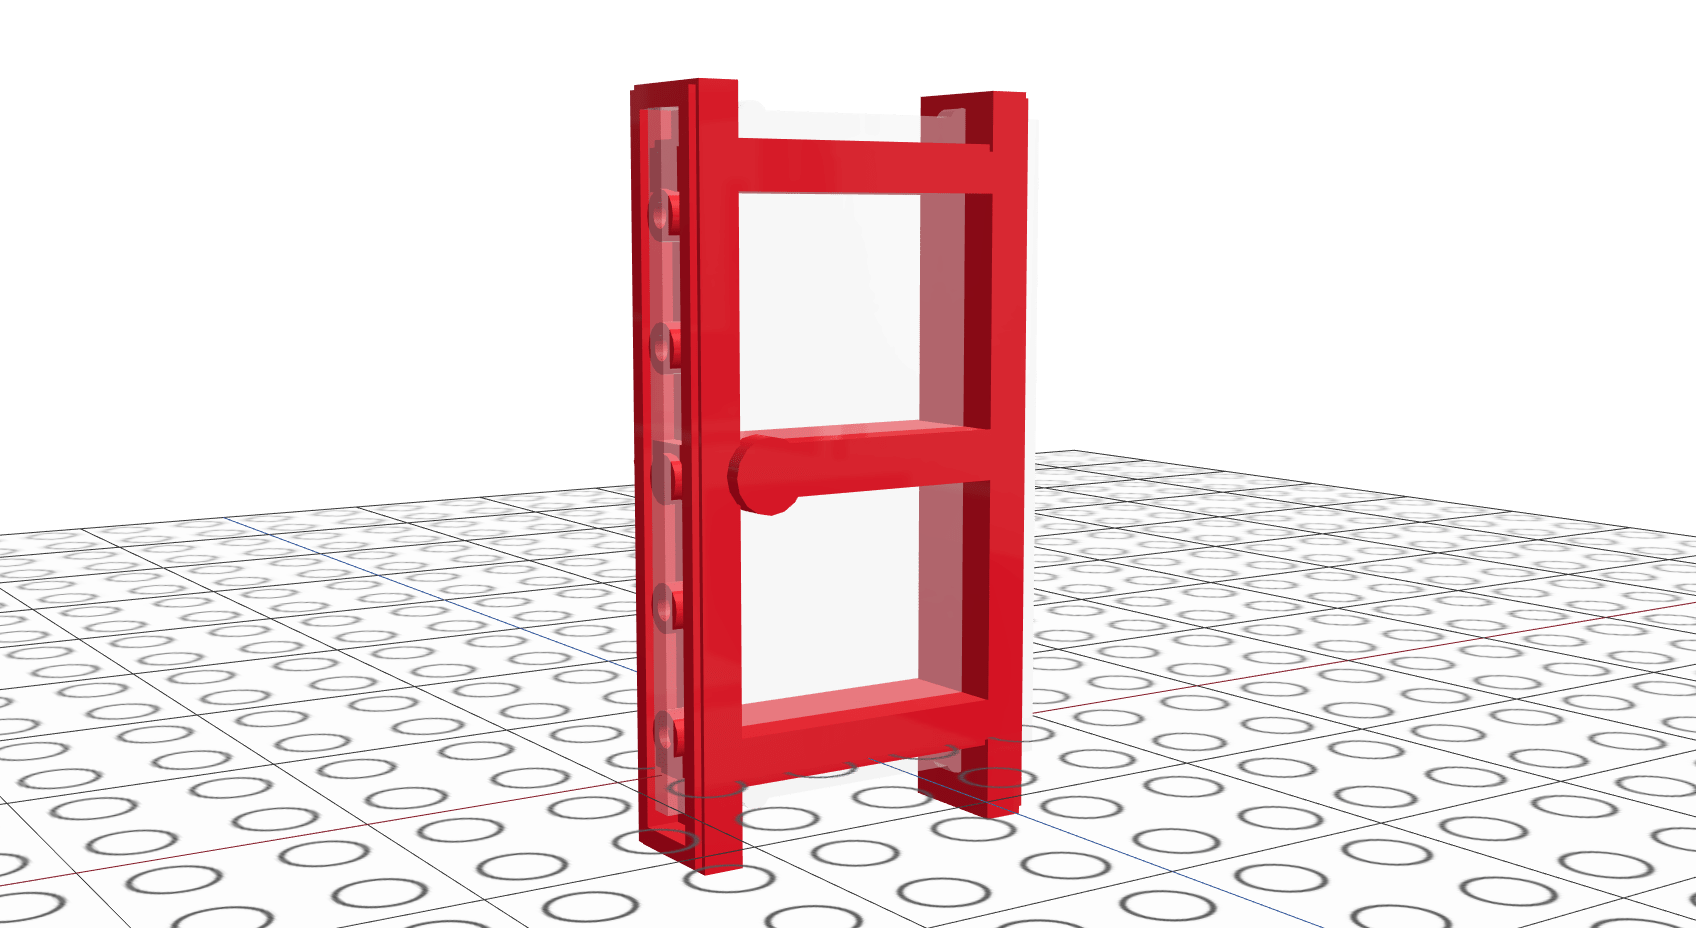 Screenshot of LEGO 1x4 door recreated in Mecabricks